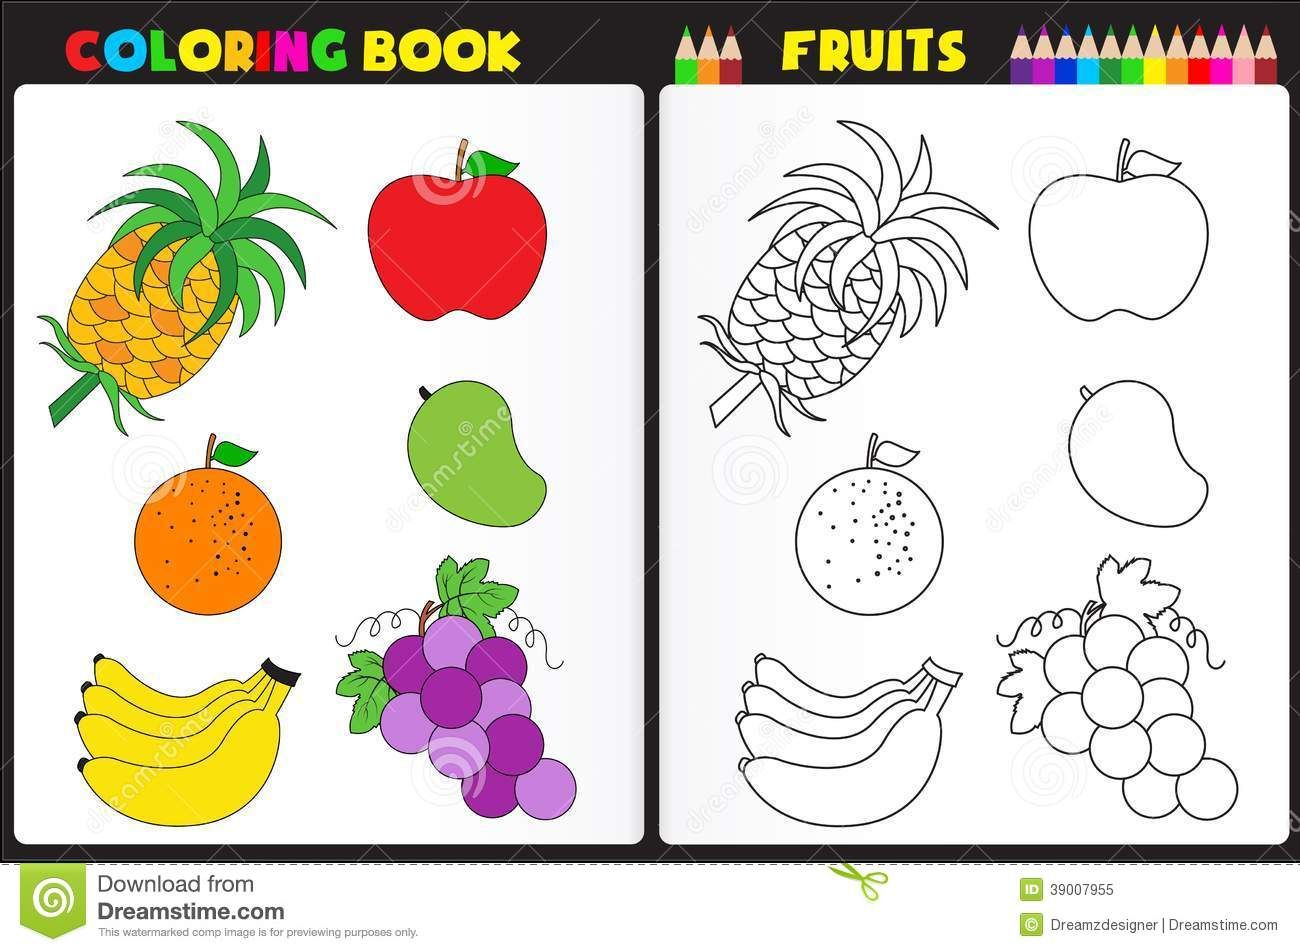 Coloring Book Page Fruits Nature Kids Colorful Sketches To